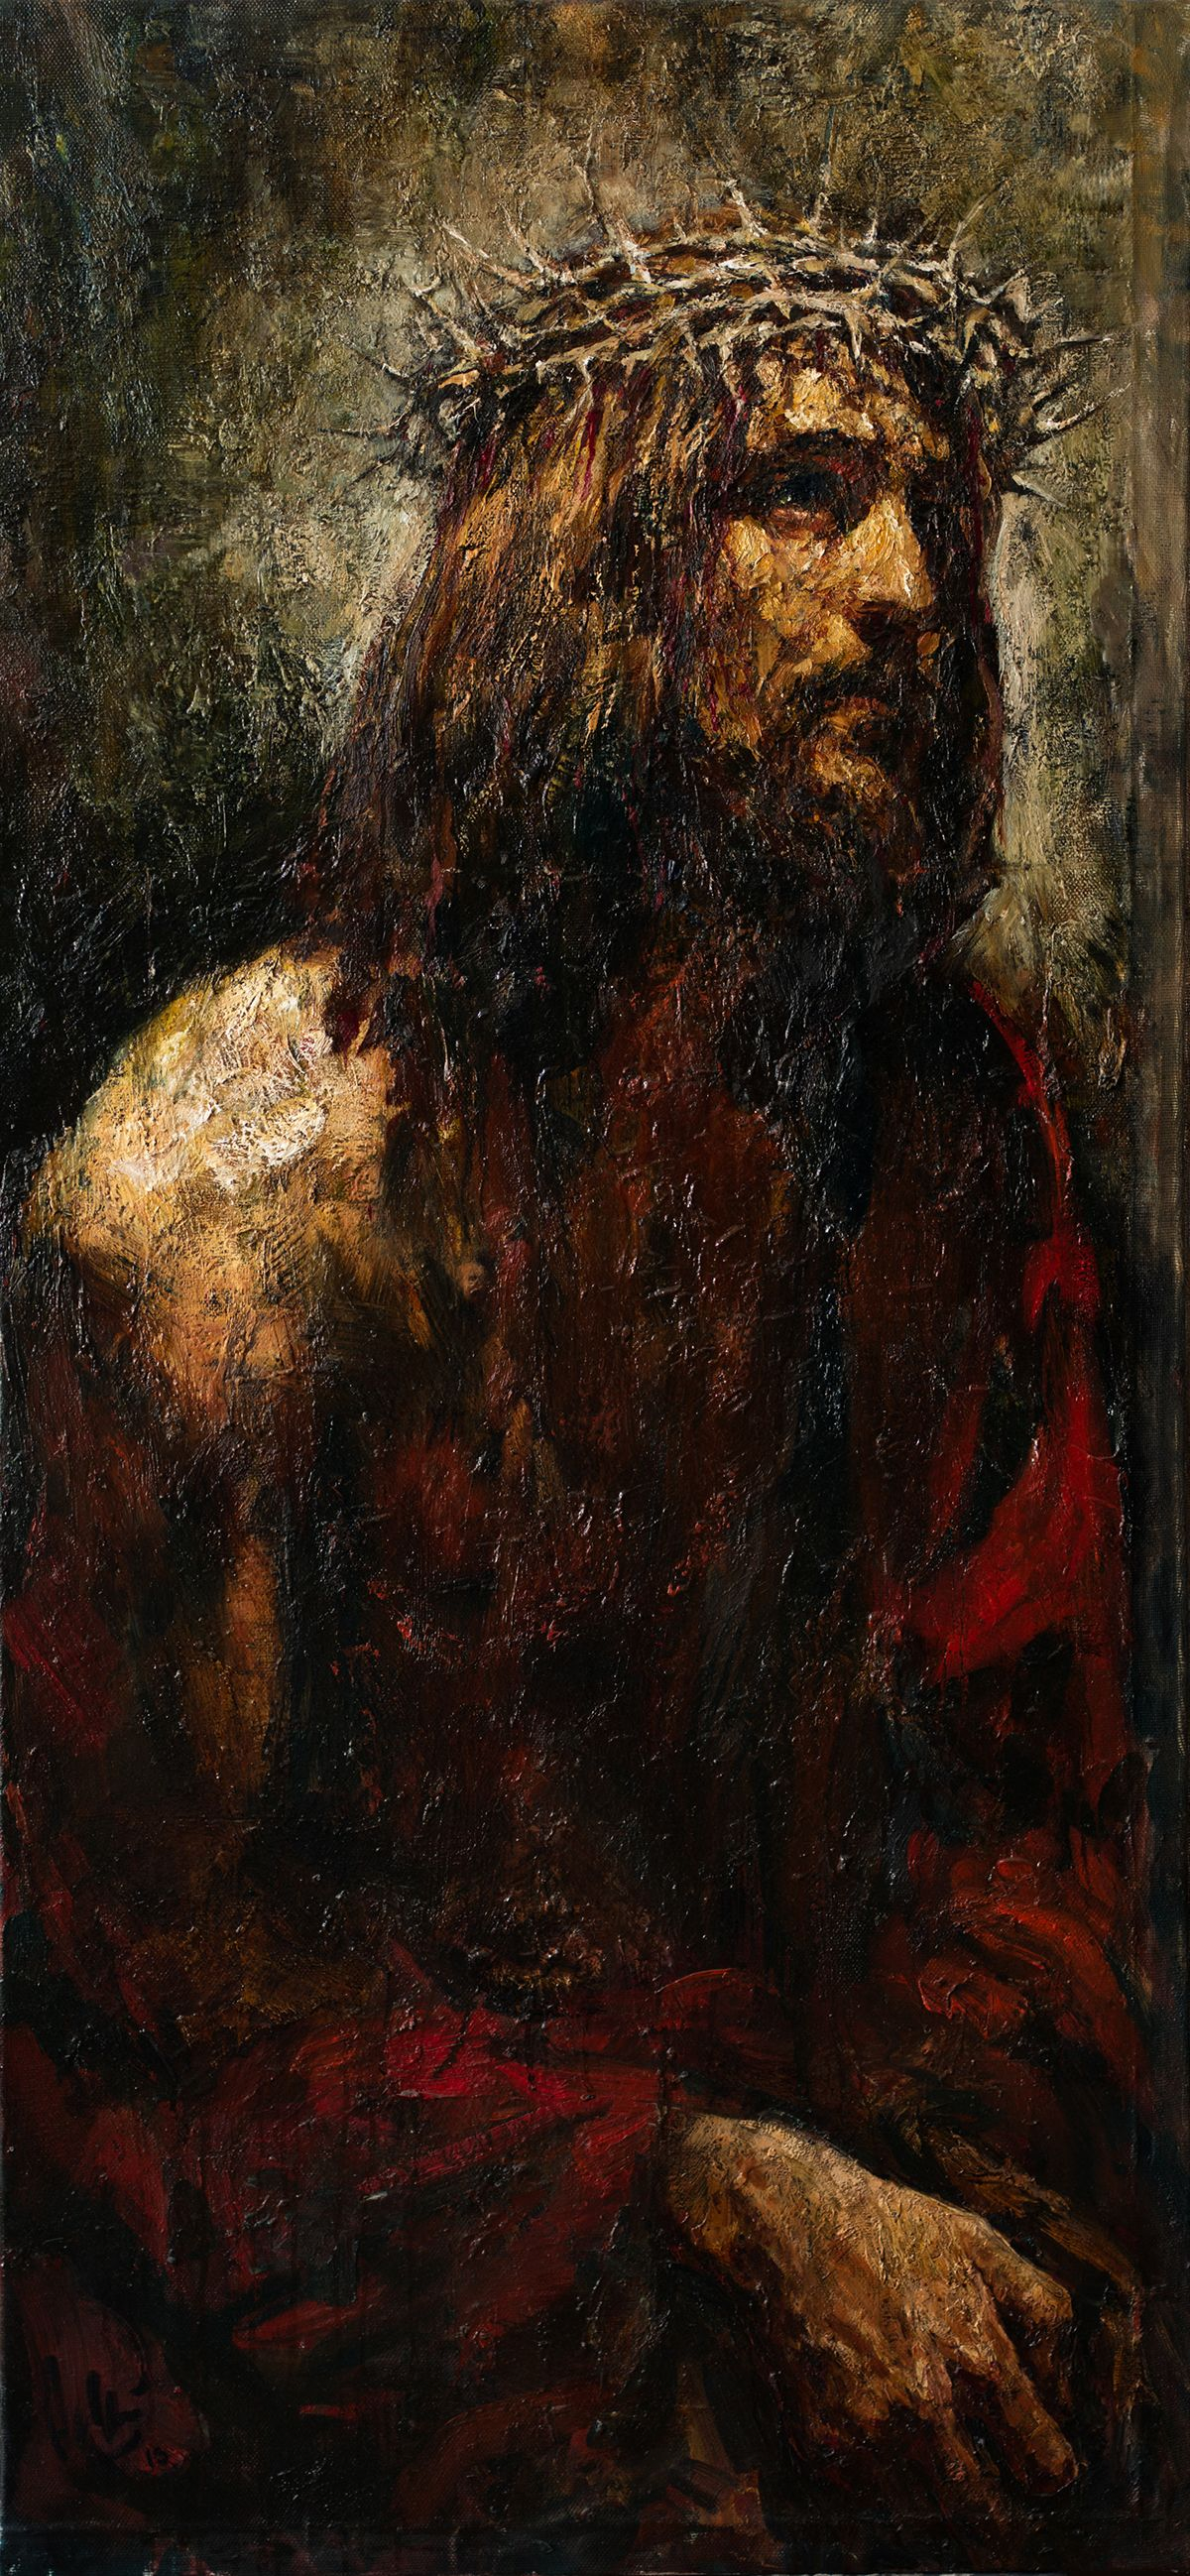 """Ecce homo"", 162x75 cm, oil on canvas,2013. Anatoly Shumkin"